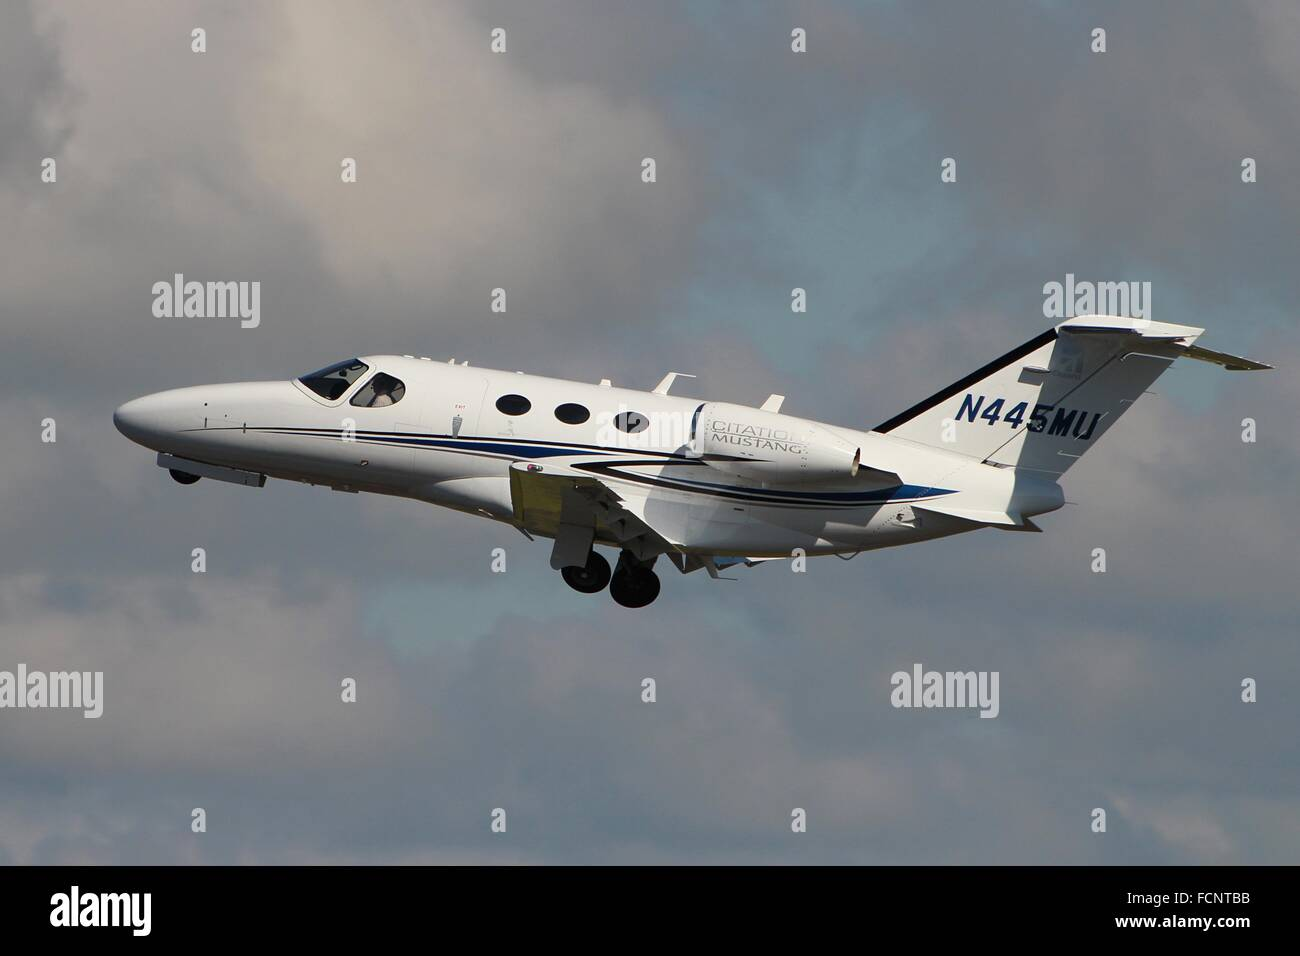 N445MU, a Cessna 510 Citation Mustang, departs from Glasgow Prestwick International Airport. Stock Photo